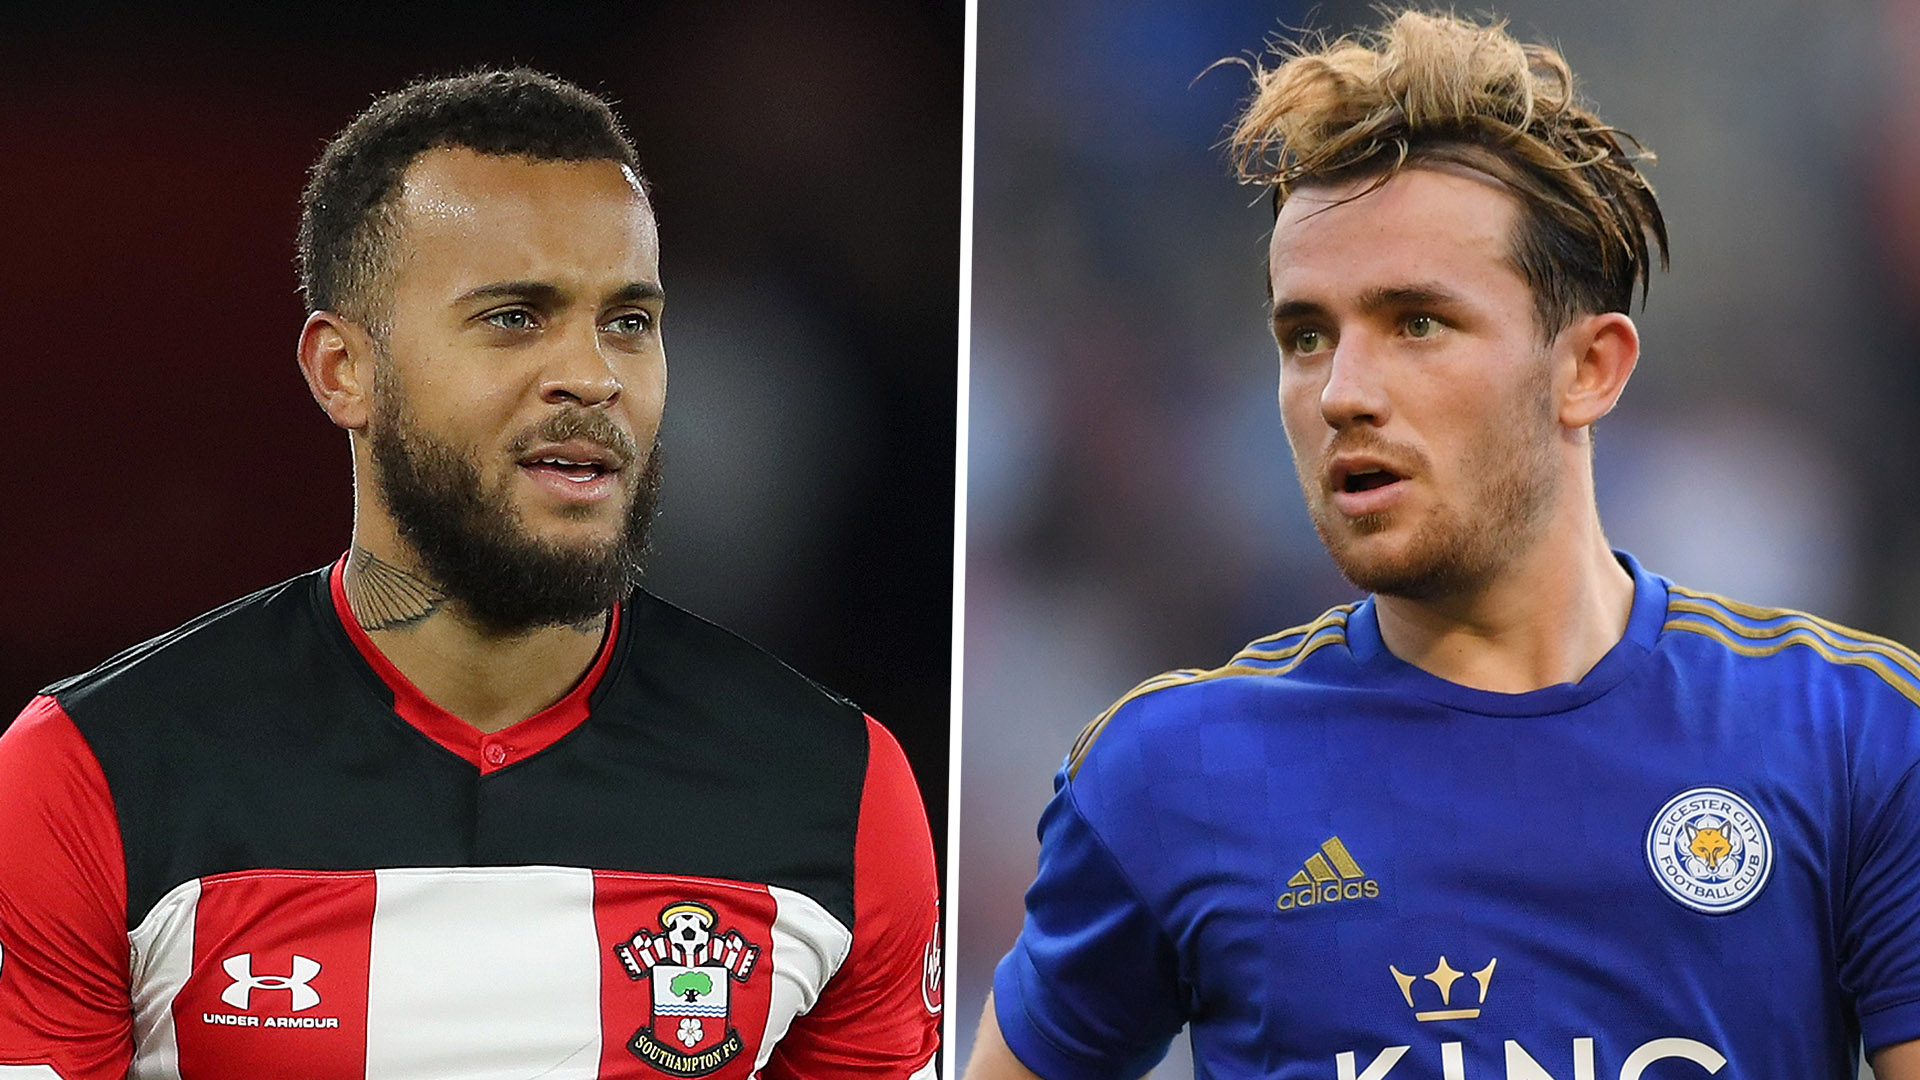 Leicester target Bertrand as Chilwell replacement with Chelsea & Man City interest building